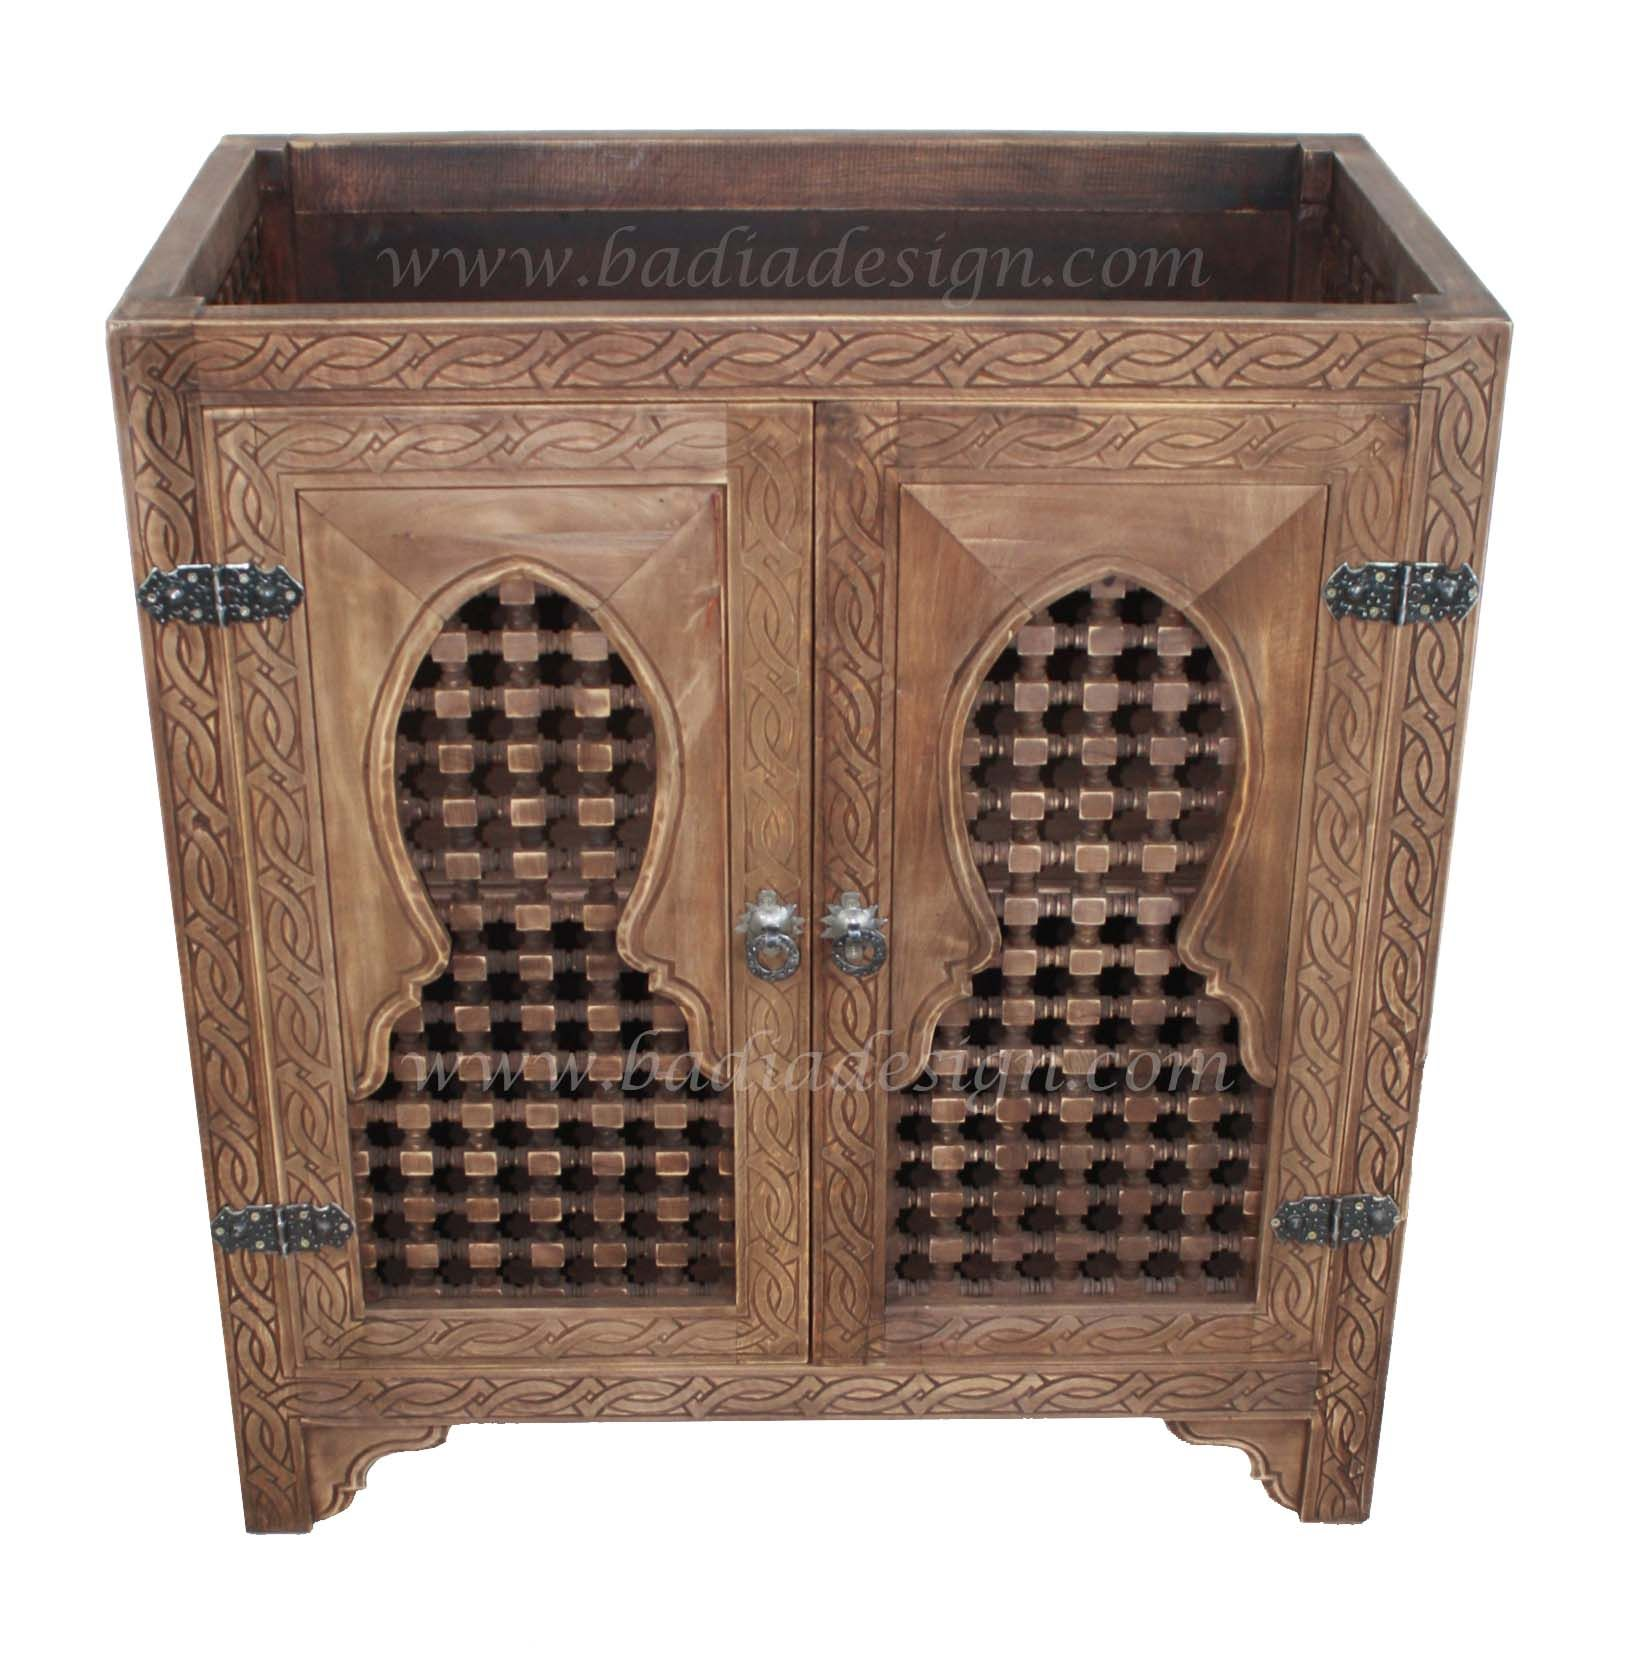 cheap moroccan furniture. Moroccan Vanity Including Carved Wood Vanity, Furniture, Furniture From Morocco, Morocco Cheap O